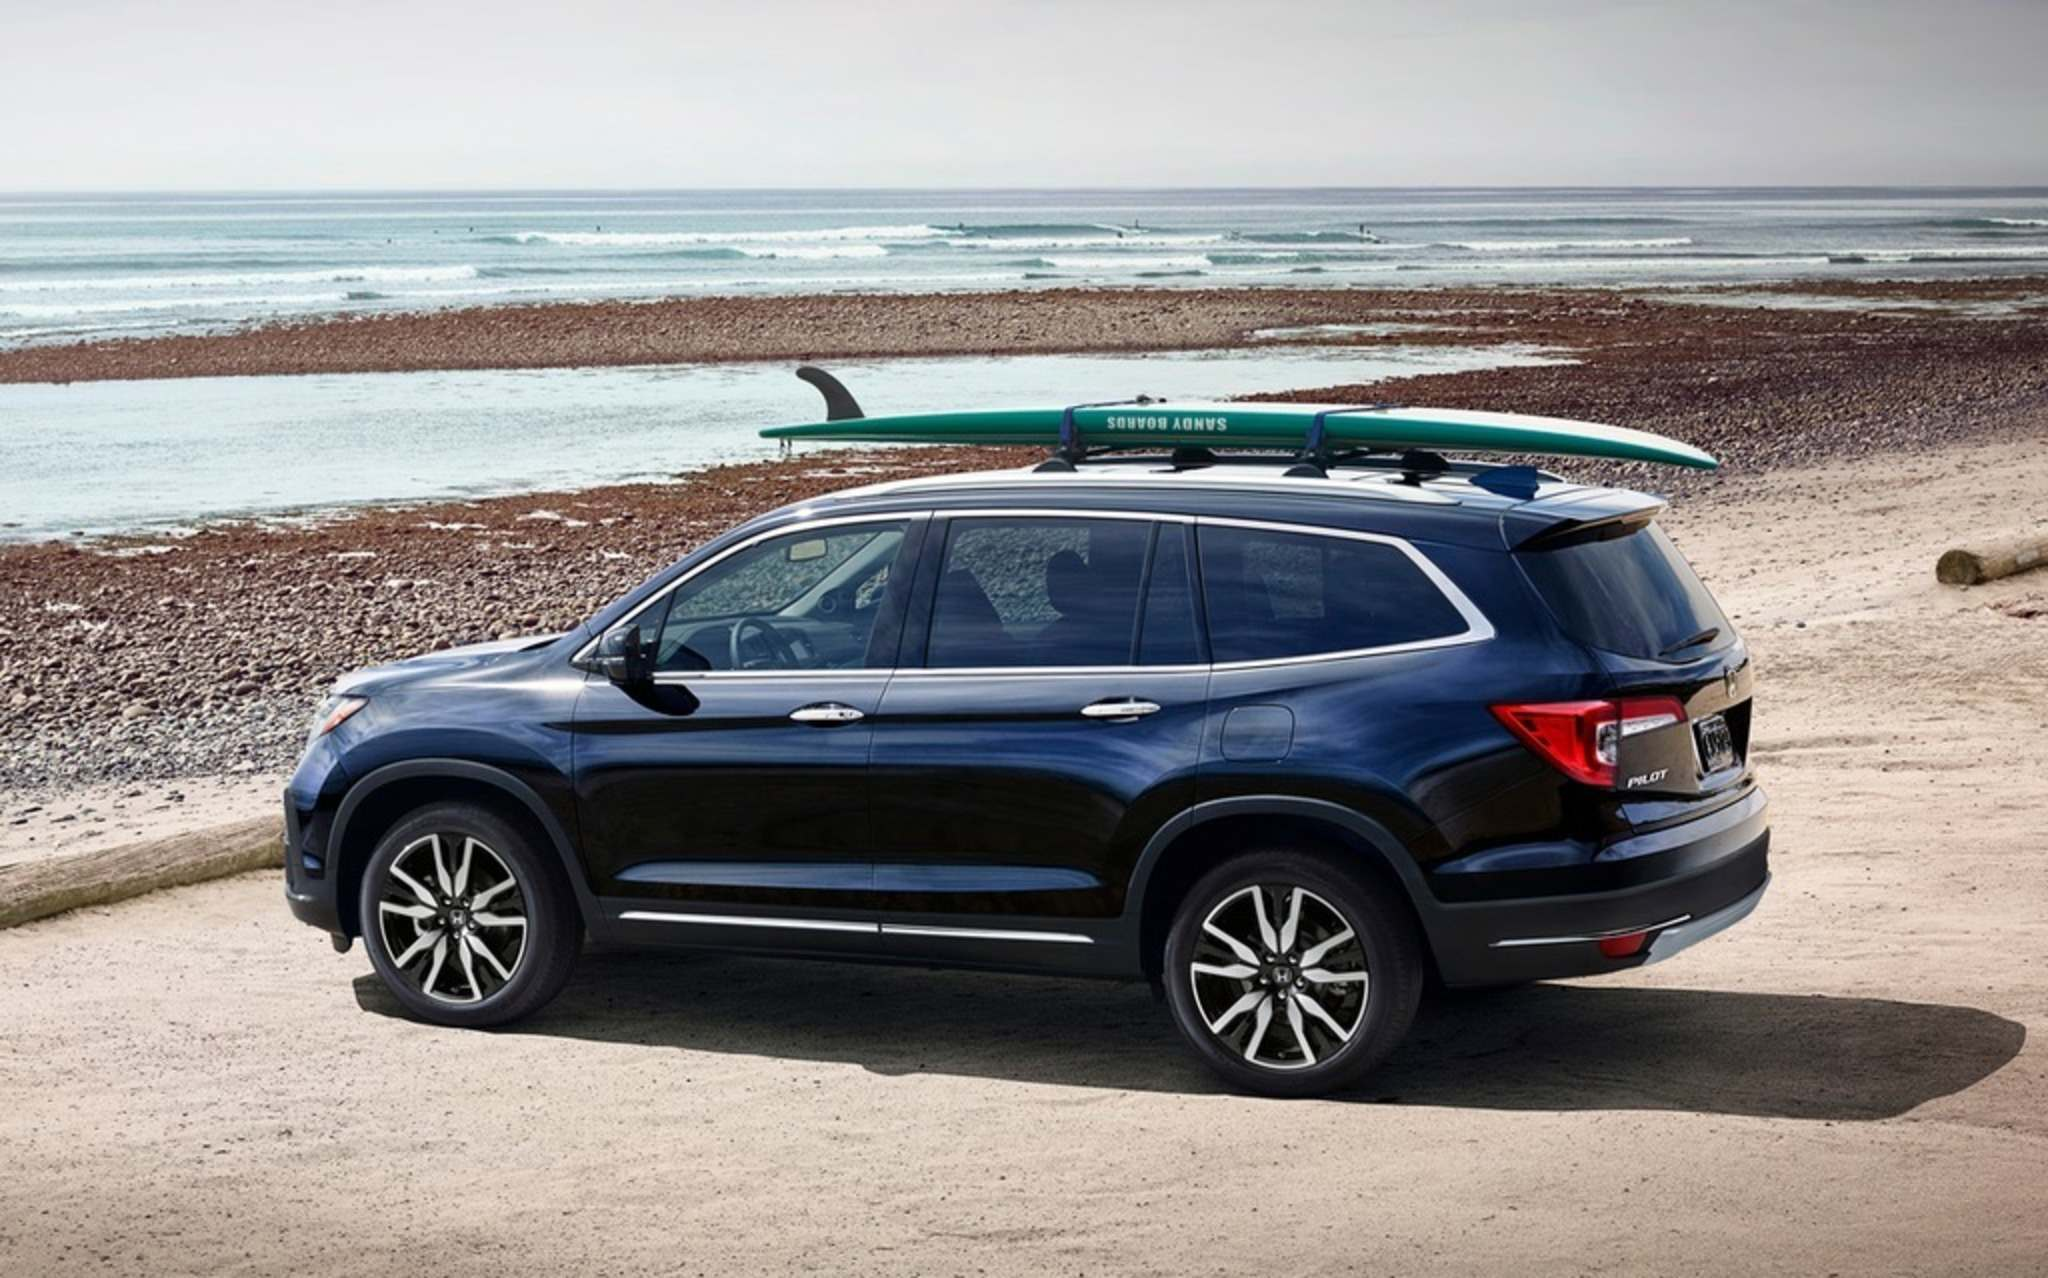 Photos by HondaThe Honda Pilot returns to Canada in 2019 with the exclusive Black Edition. New design features combined with familiar cargo space makes the Pilot a great family option.